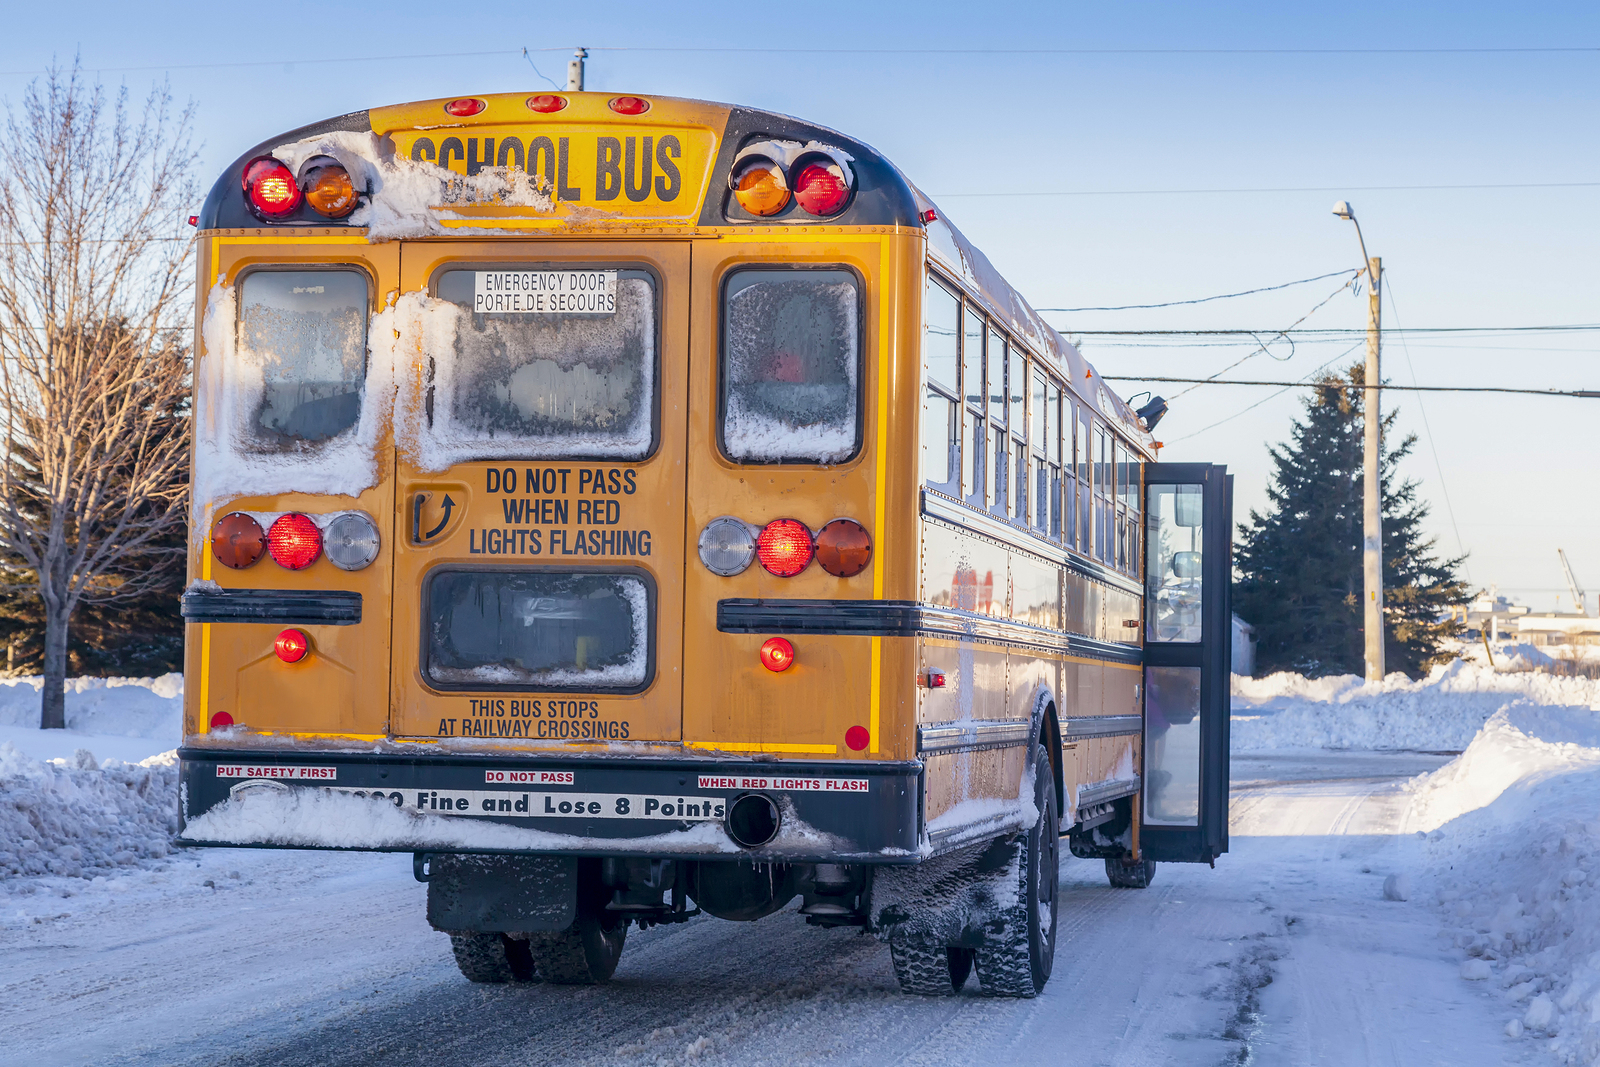 A typical yellow school bus stopped to pick up passengers on an